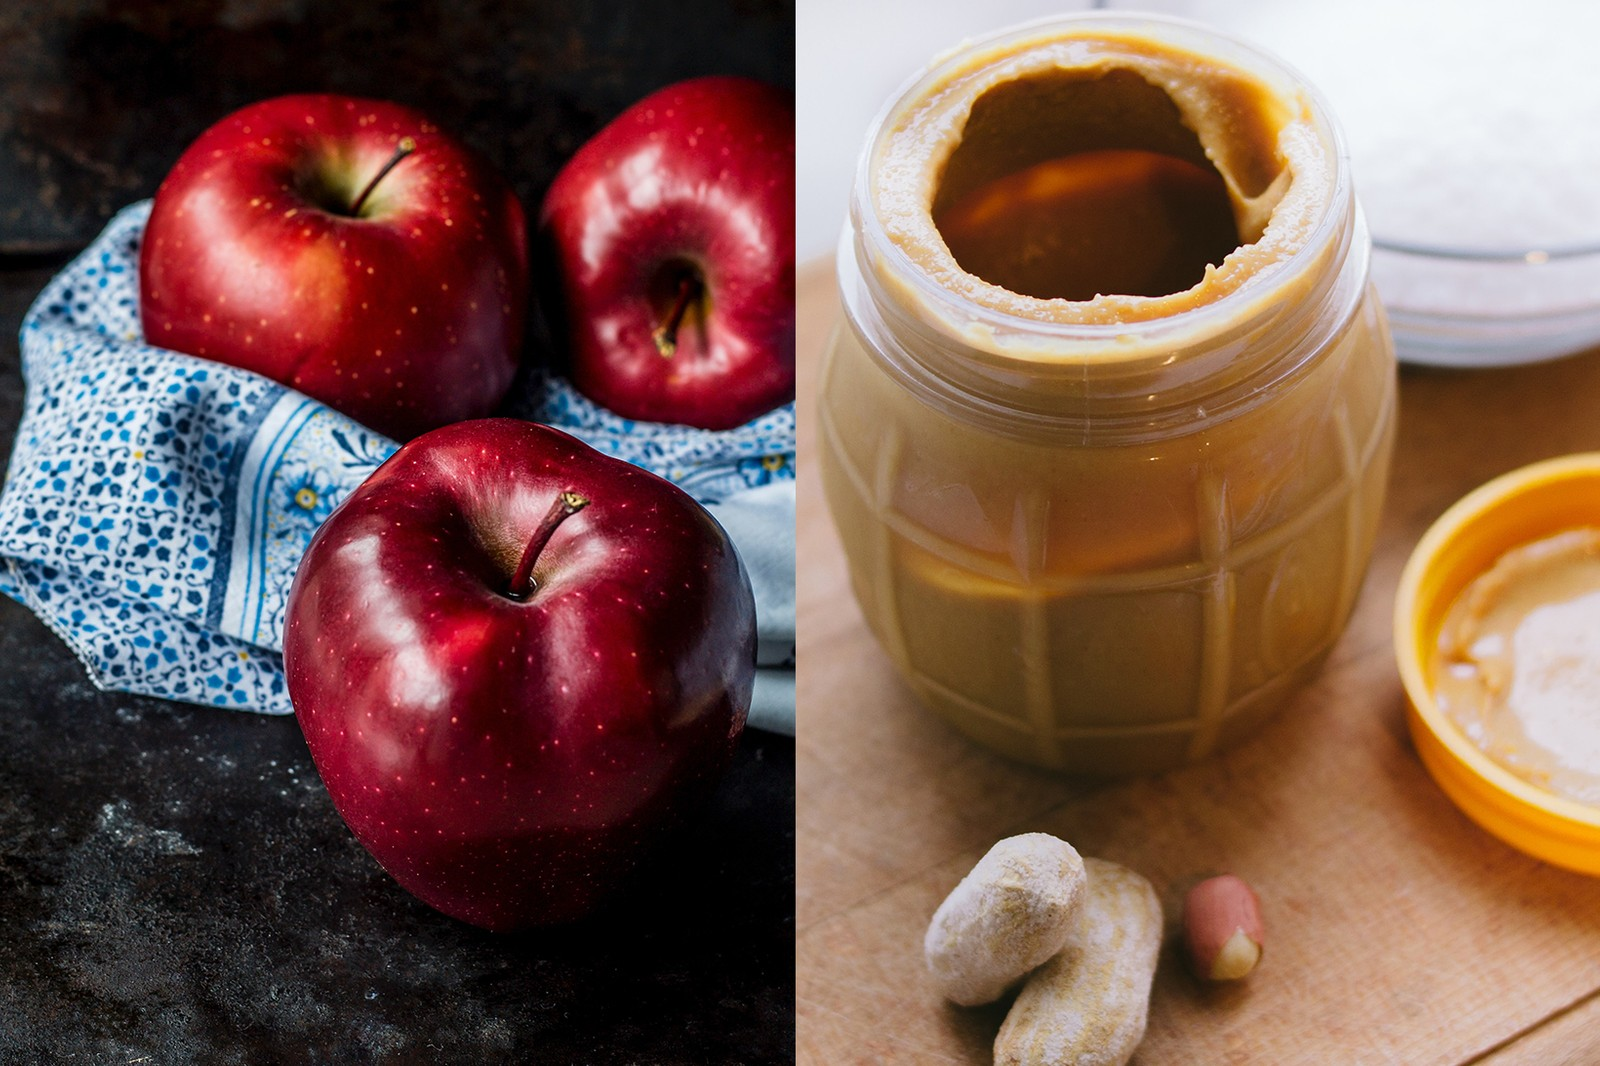 best healthy simple snacks eat work office food fruits granola honey apples health black coffee cinnamon oatmeal